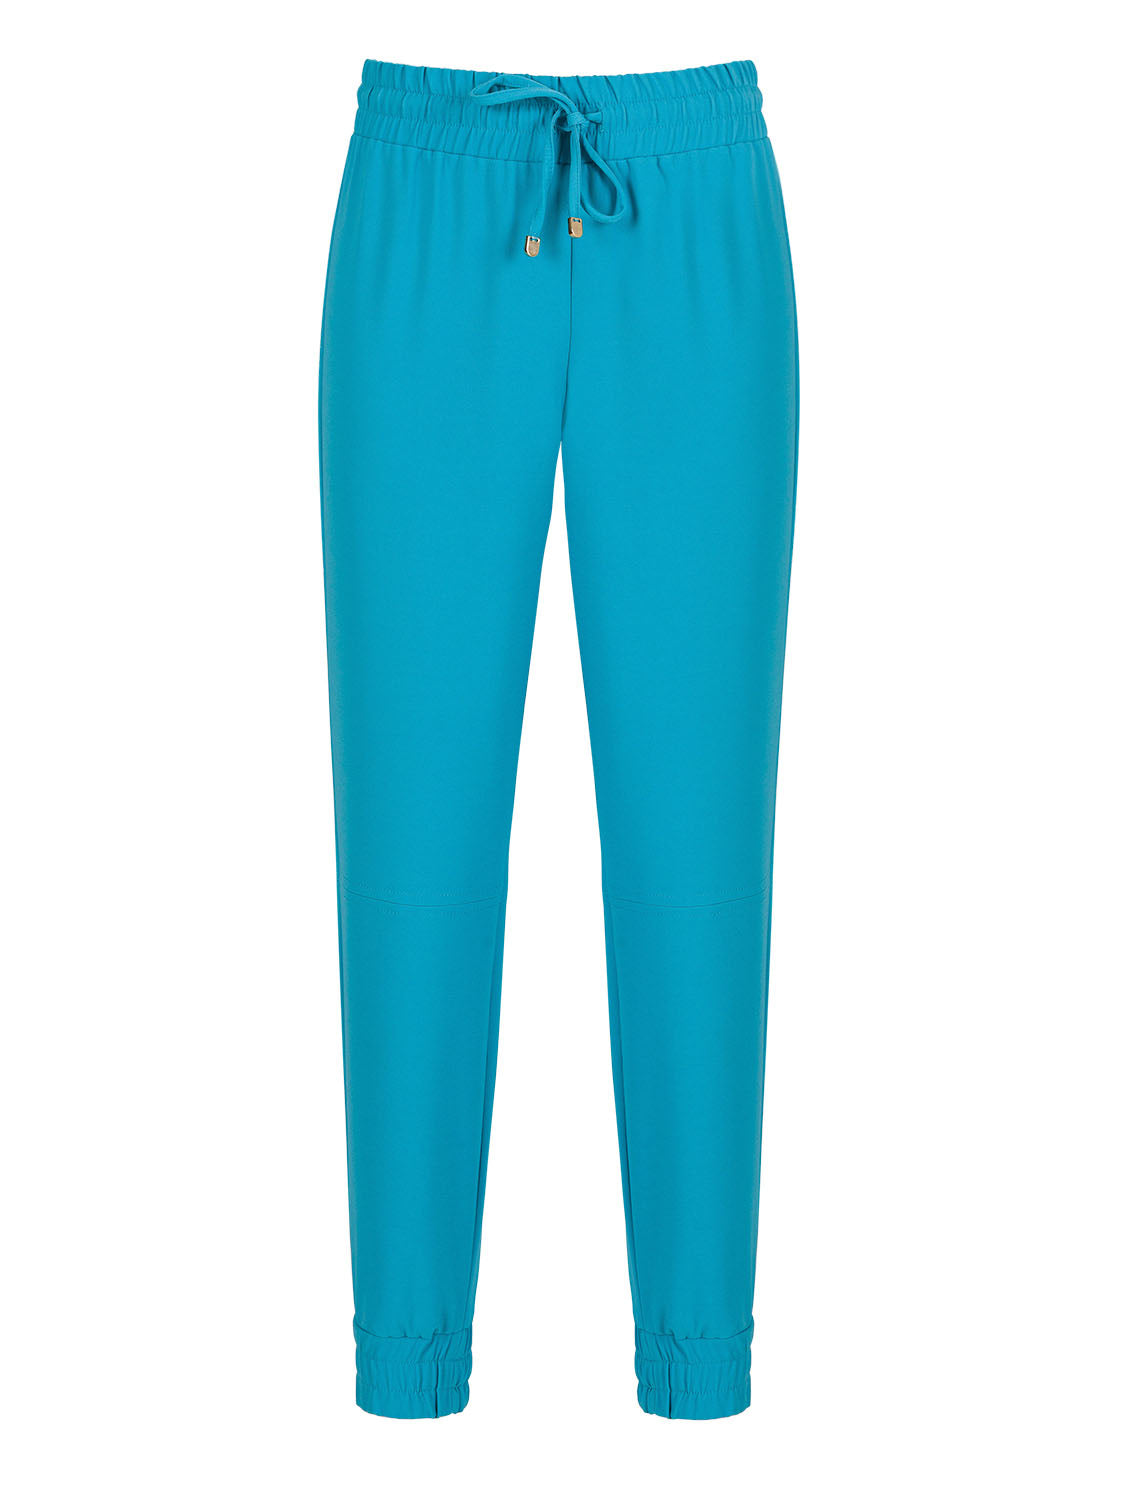 Jogging Pants with Elastic Waistband